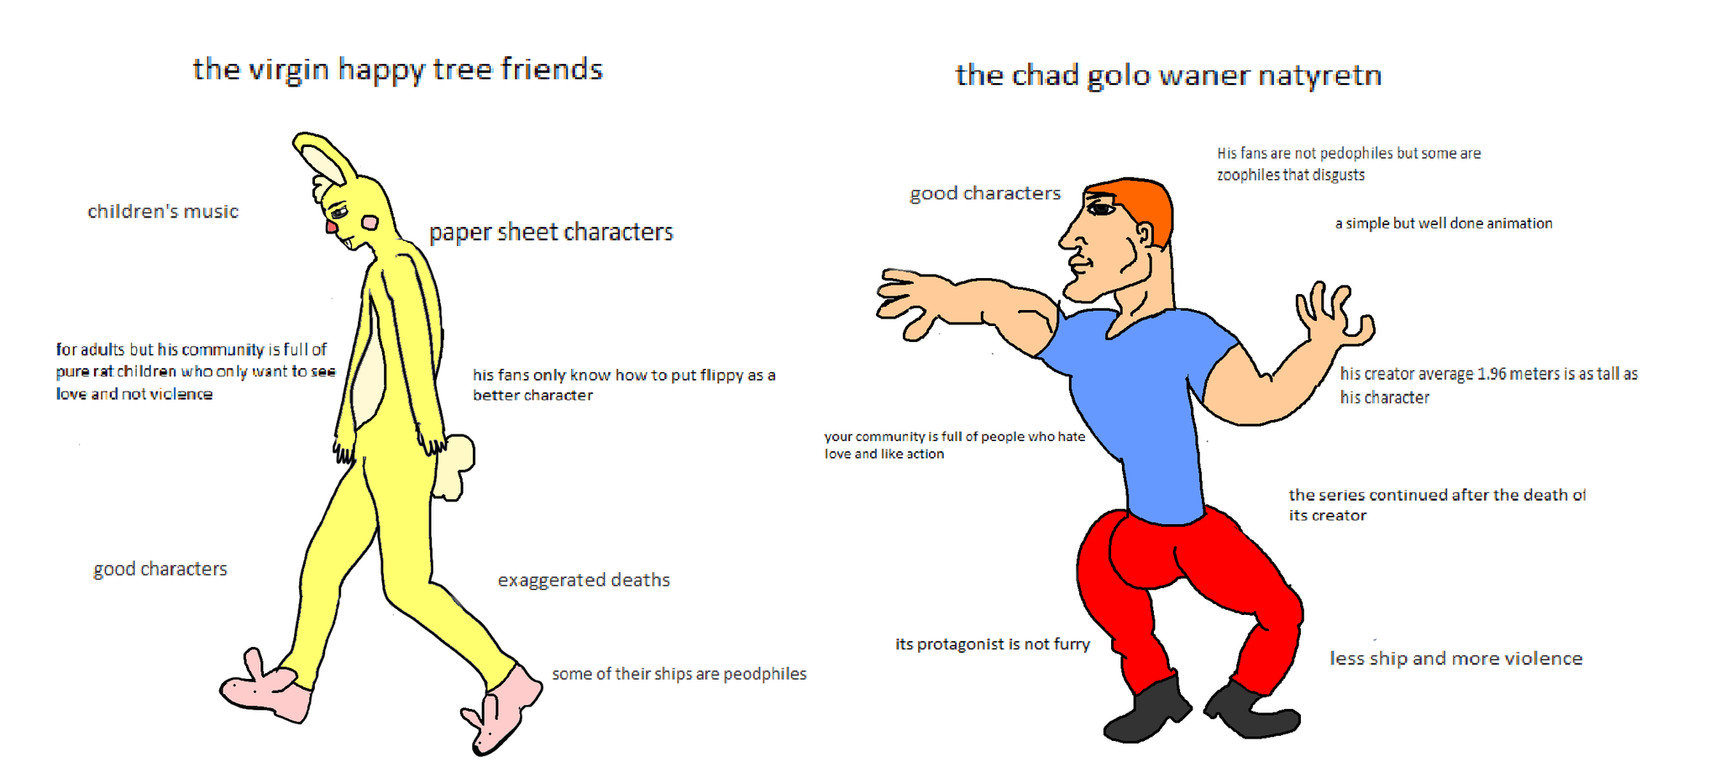 the virgin happy tree friends vs the chad golo waner natyretn |chad vs virgin meme